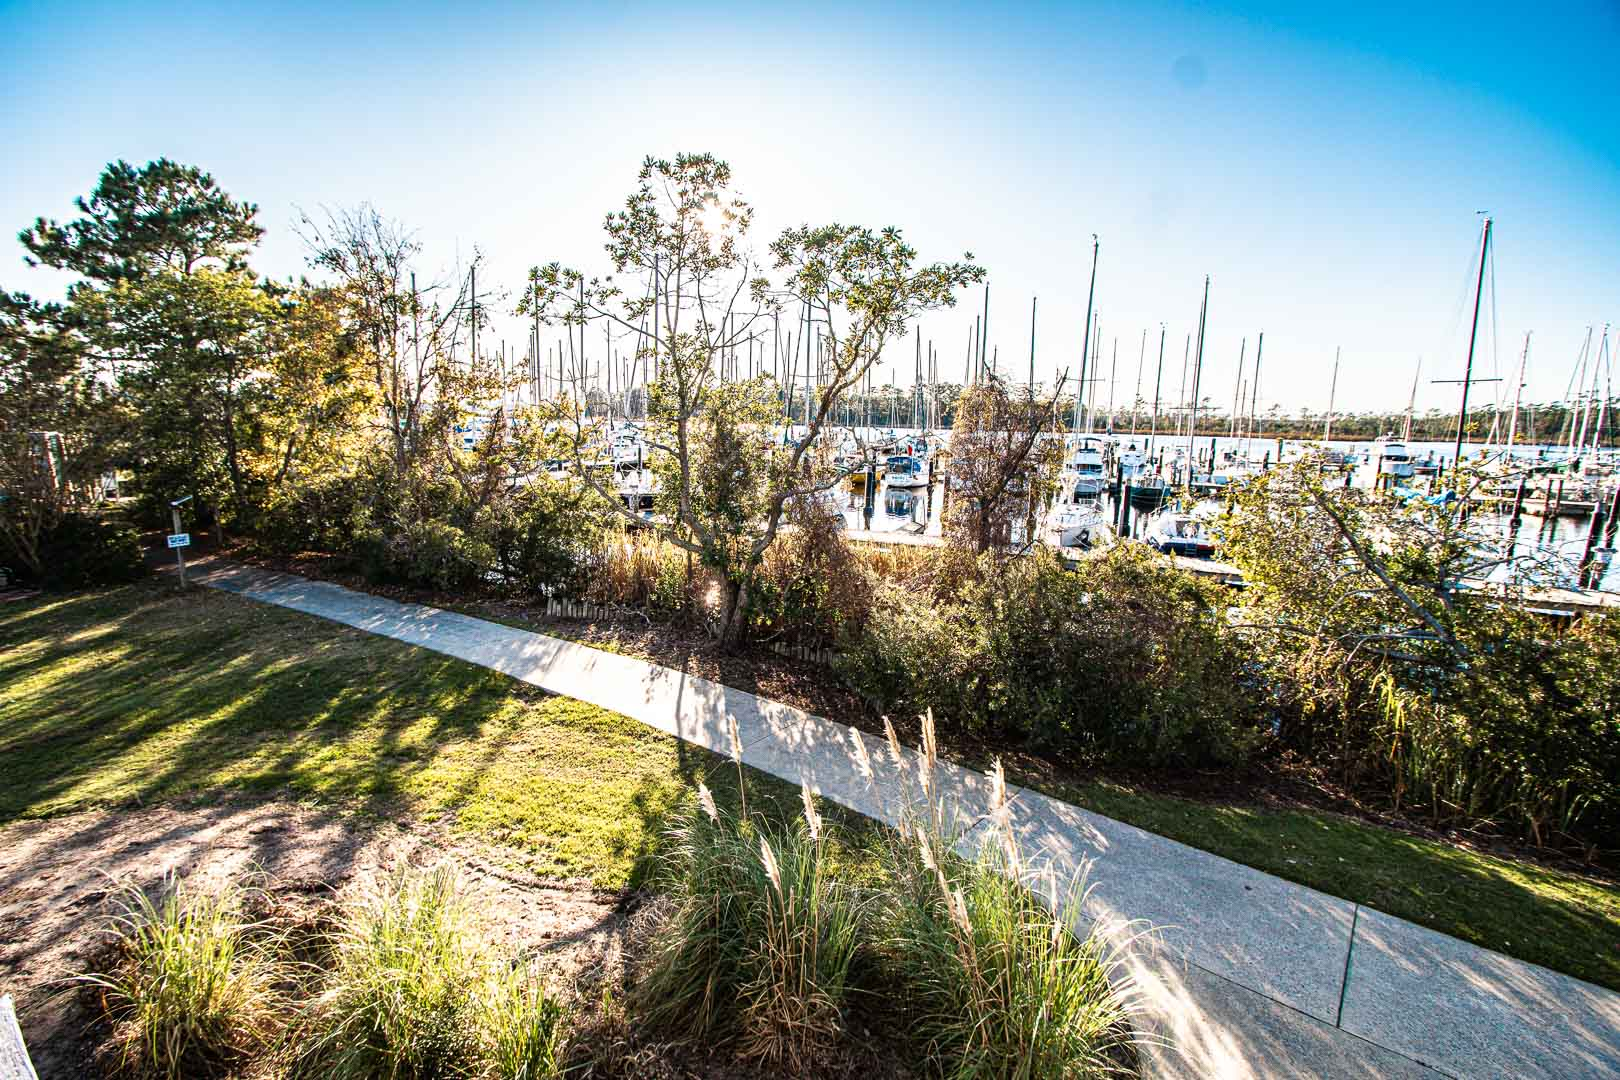 A beautiful view to the lake from VRI's Harbourside II in New Bern, North Carolina.